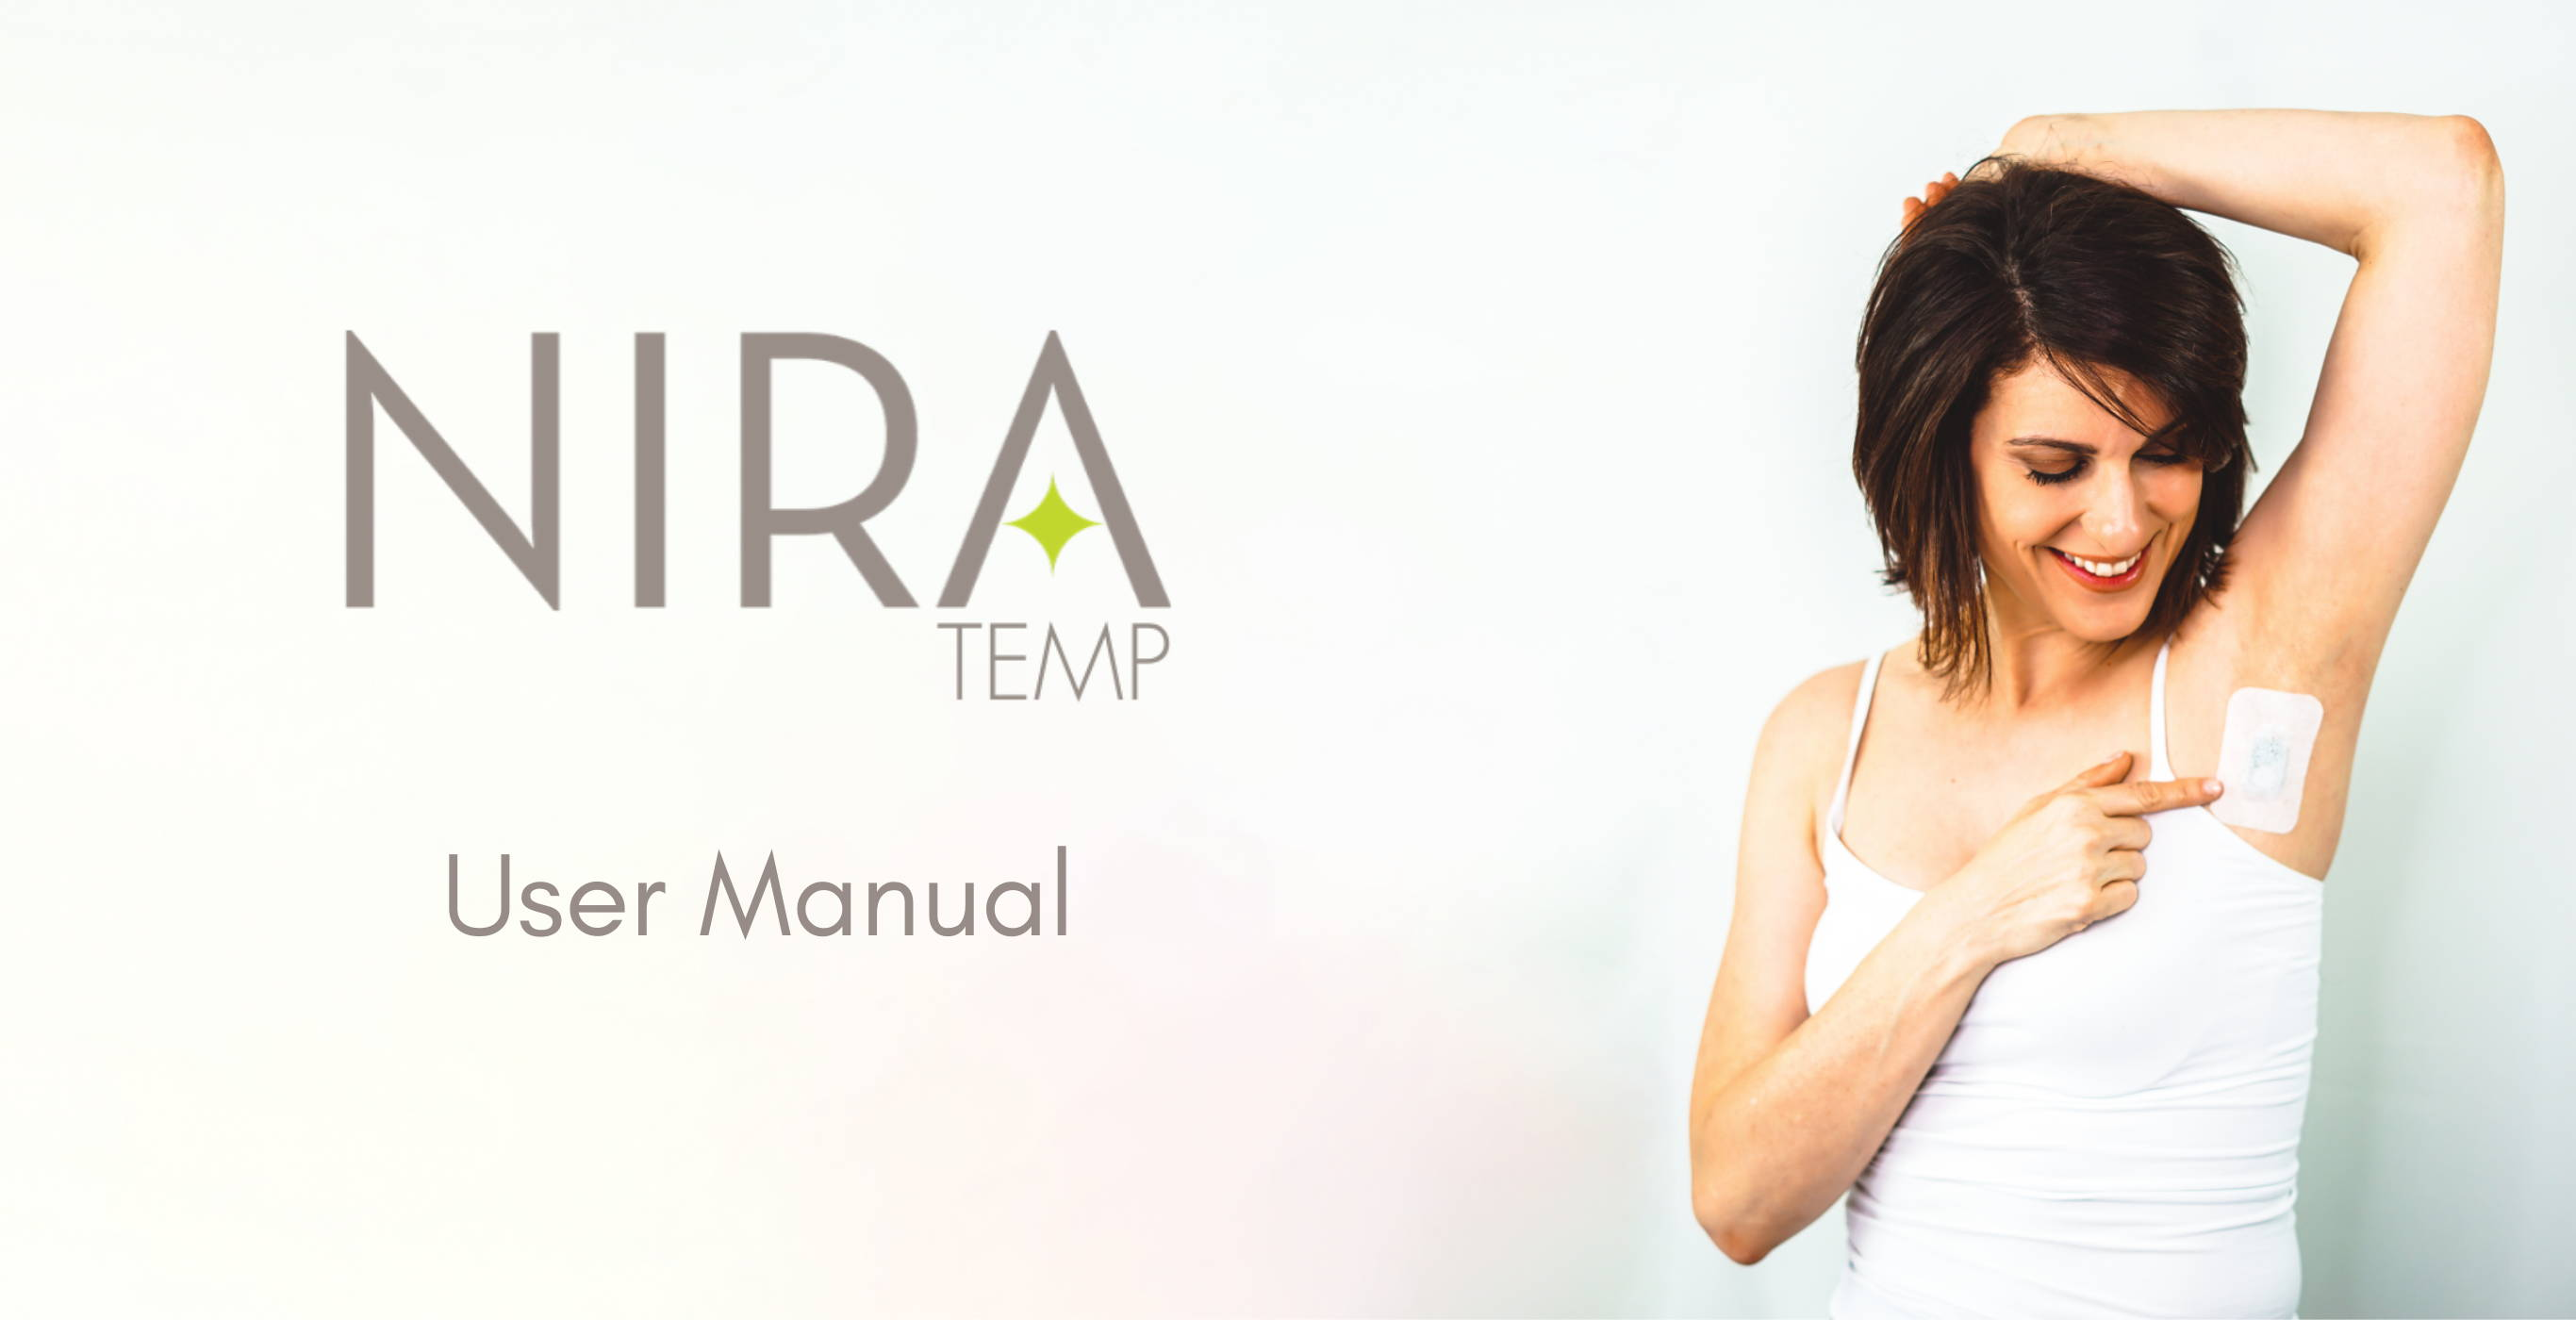 NIRA Temp User Manual